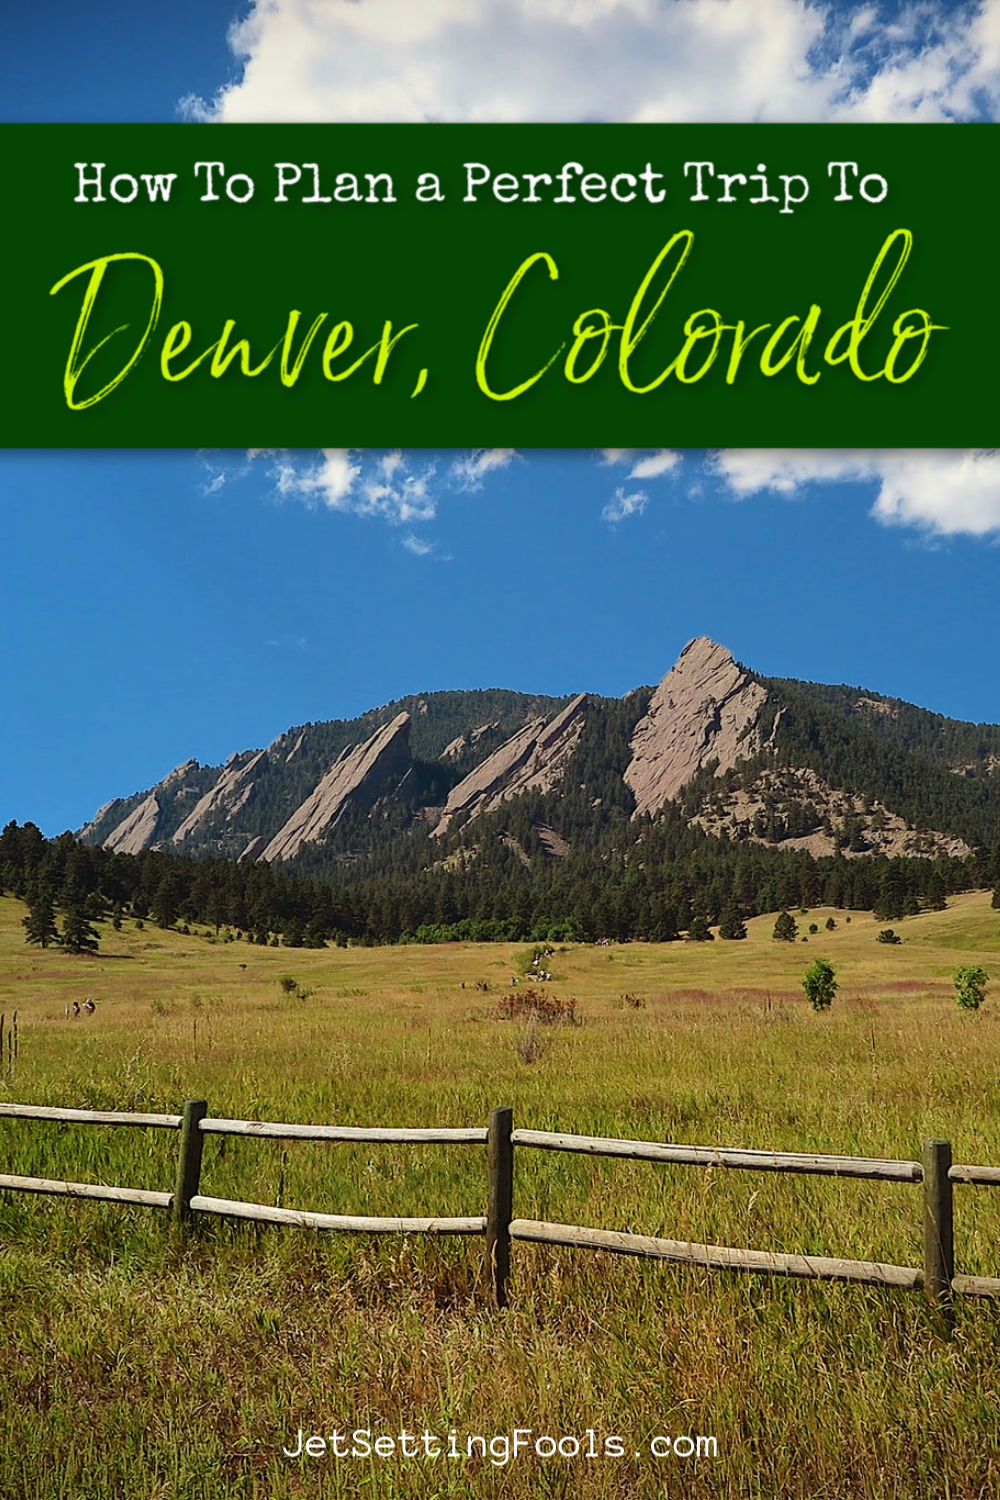 How To Plan a Perfect Trip To Denver Colorado by JetSettingFools.com